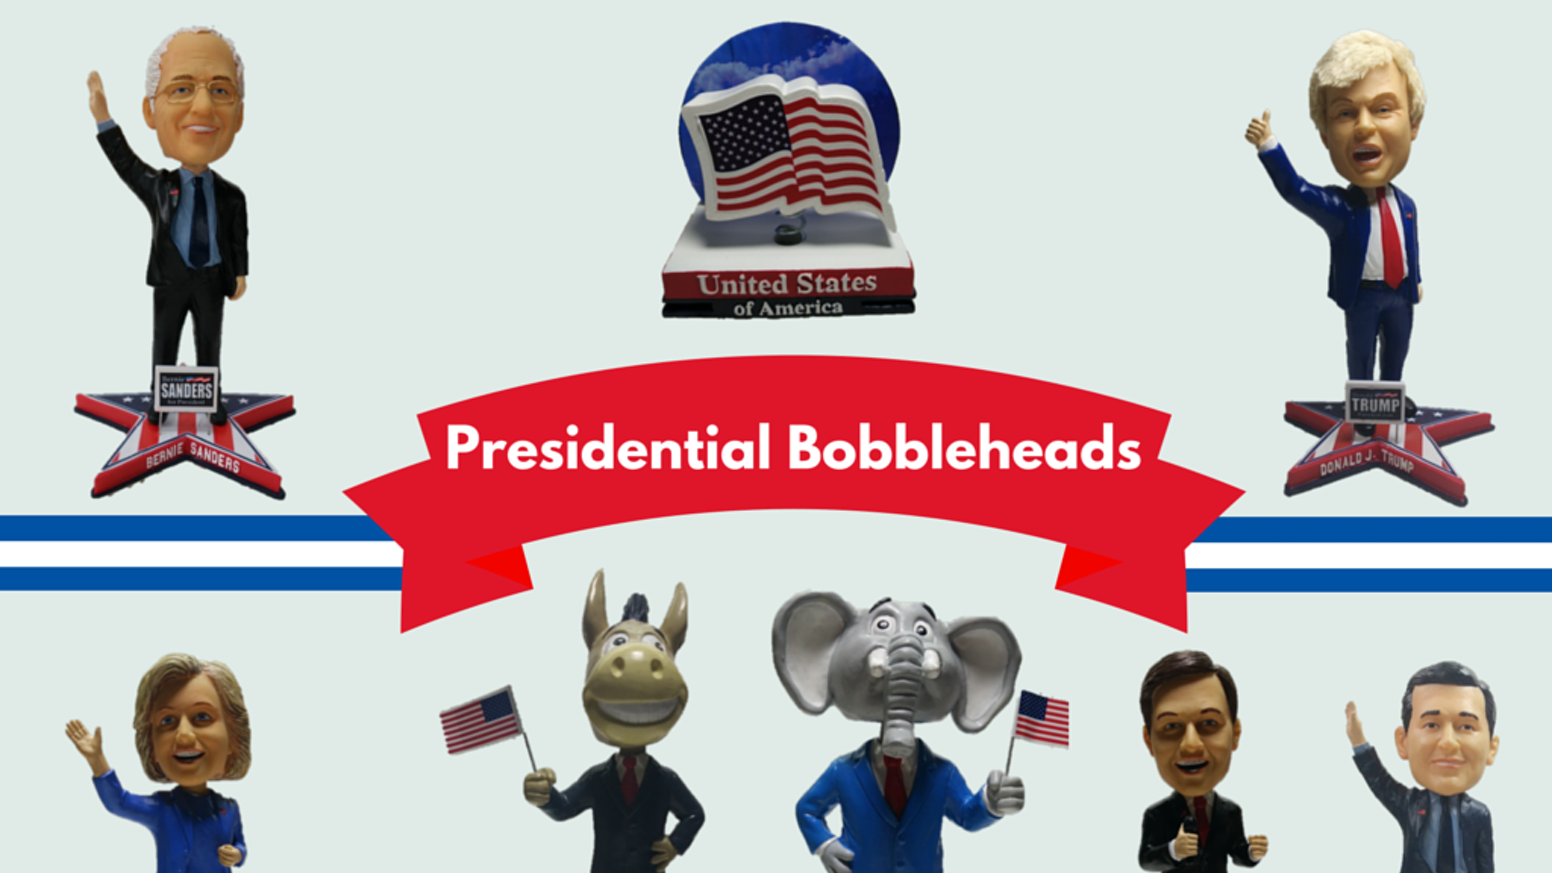 2016 Political Campaign Bobbleheads featuring Bernie Sanders, Donald Trump, Hillary Clinton, Ted Cruz, Marco Rubio and More!